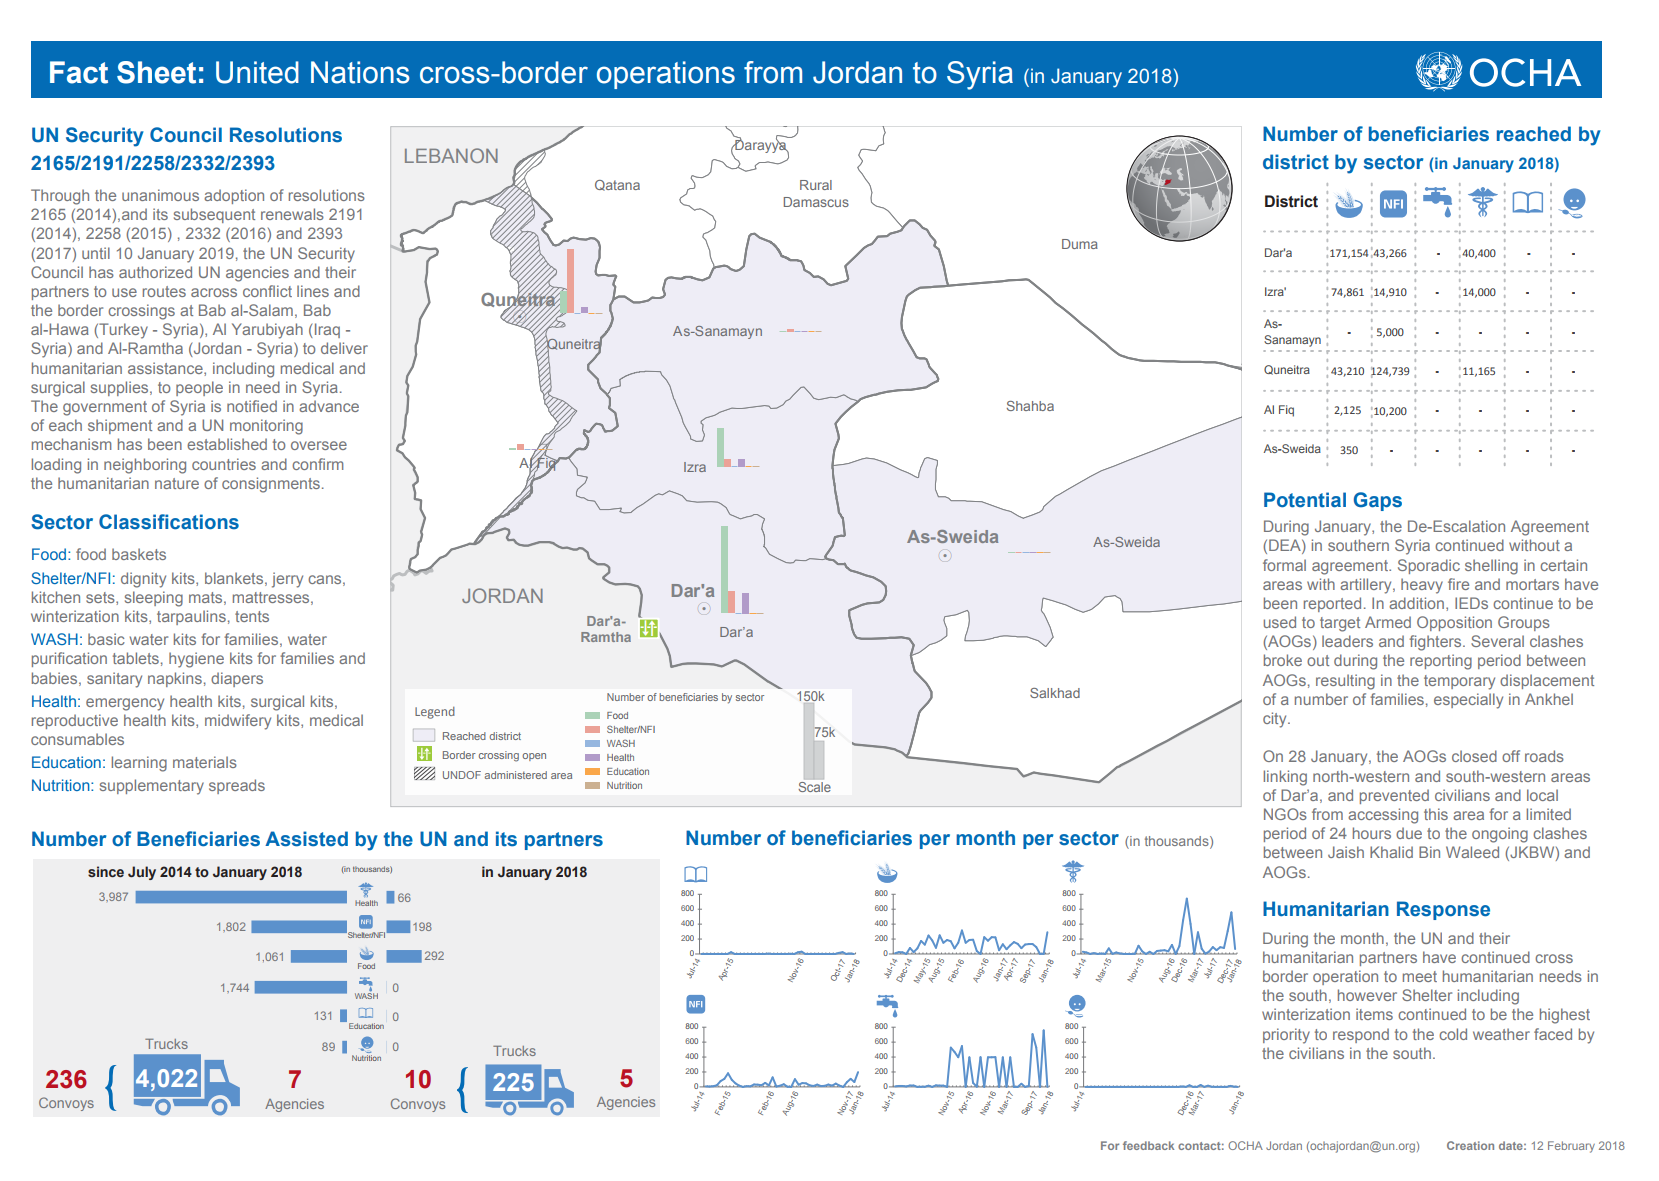 Fact Sheet: United Nations cross-border operations from Jordan to Syria (in March 2018) [EN/AR]